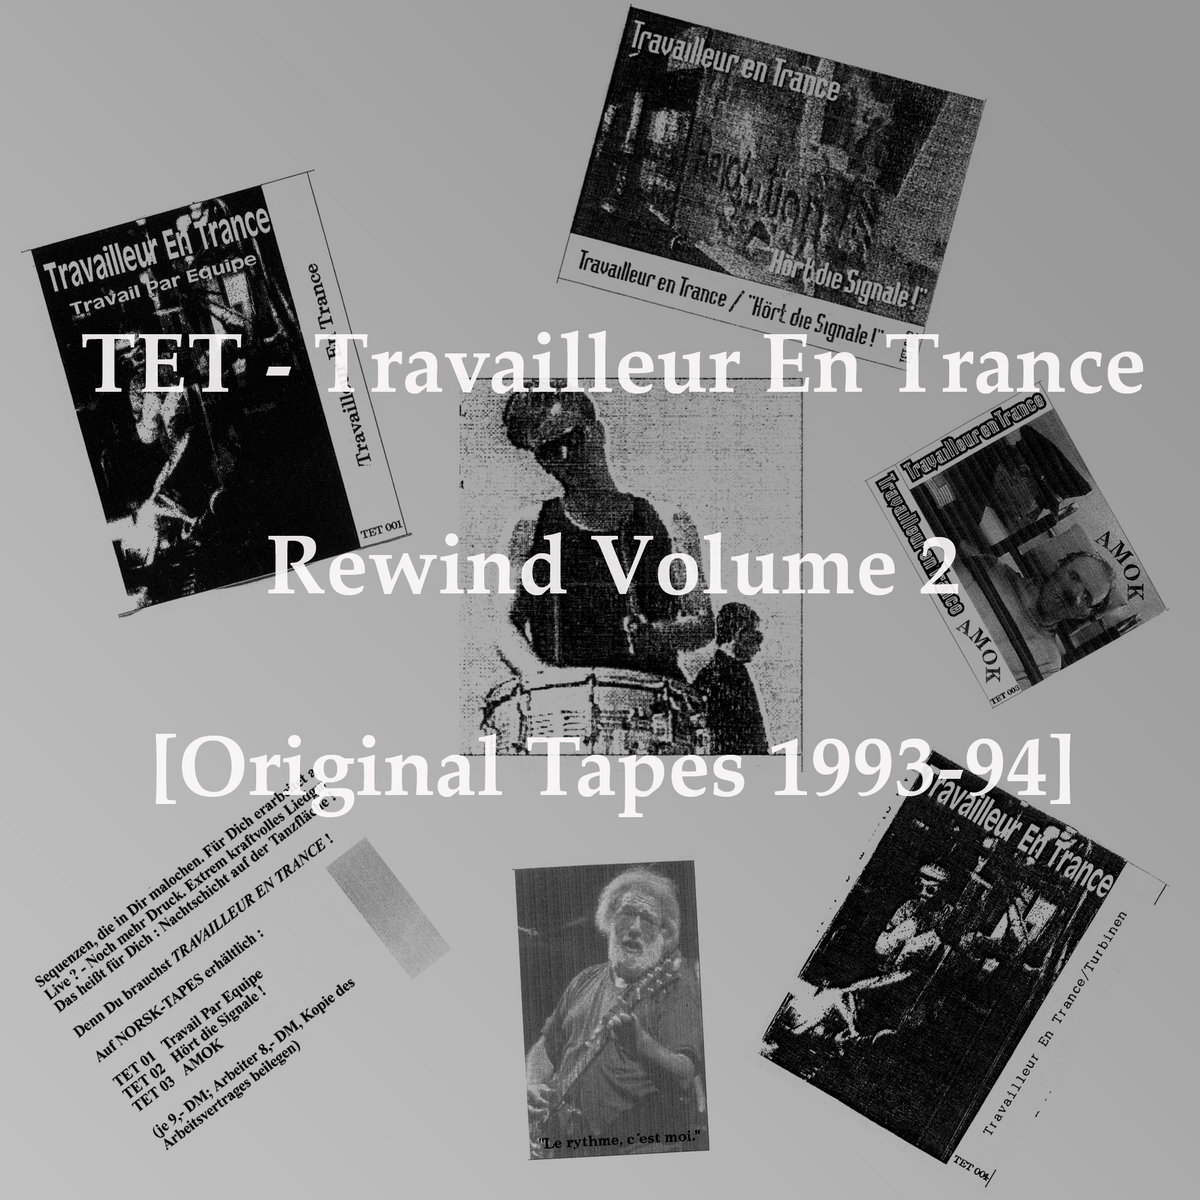 Tanzwang! (Update '93) (Direct 1993/94 Tape Copy) | TET Travailleur